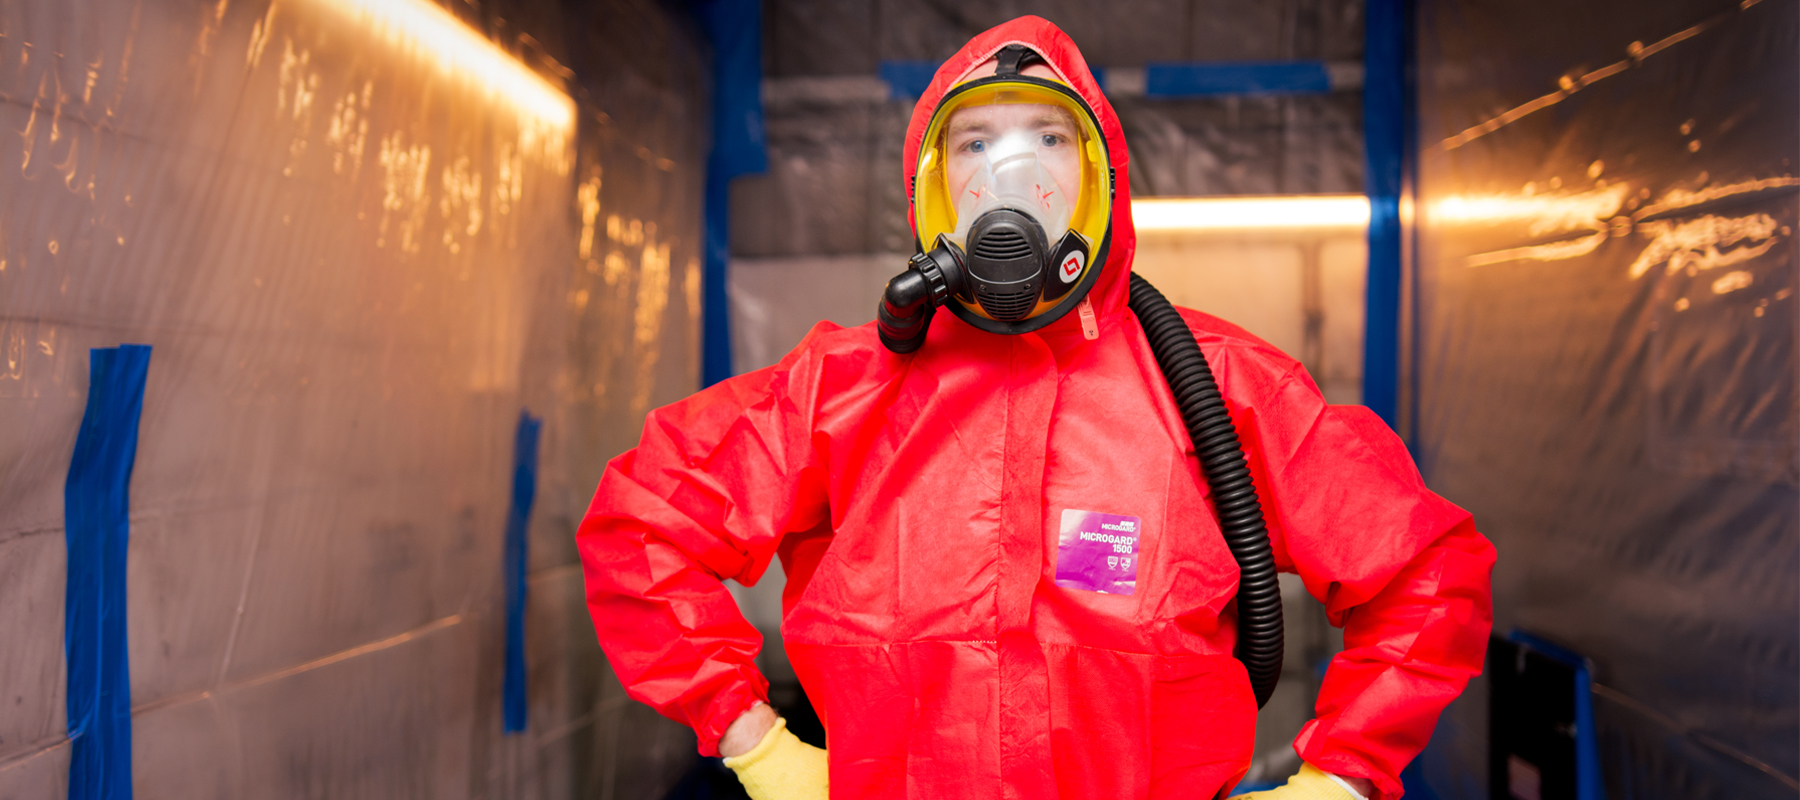 asbestos removal contact banner - Contact Us - Asbestos Removal - Asbestos Survey